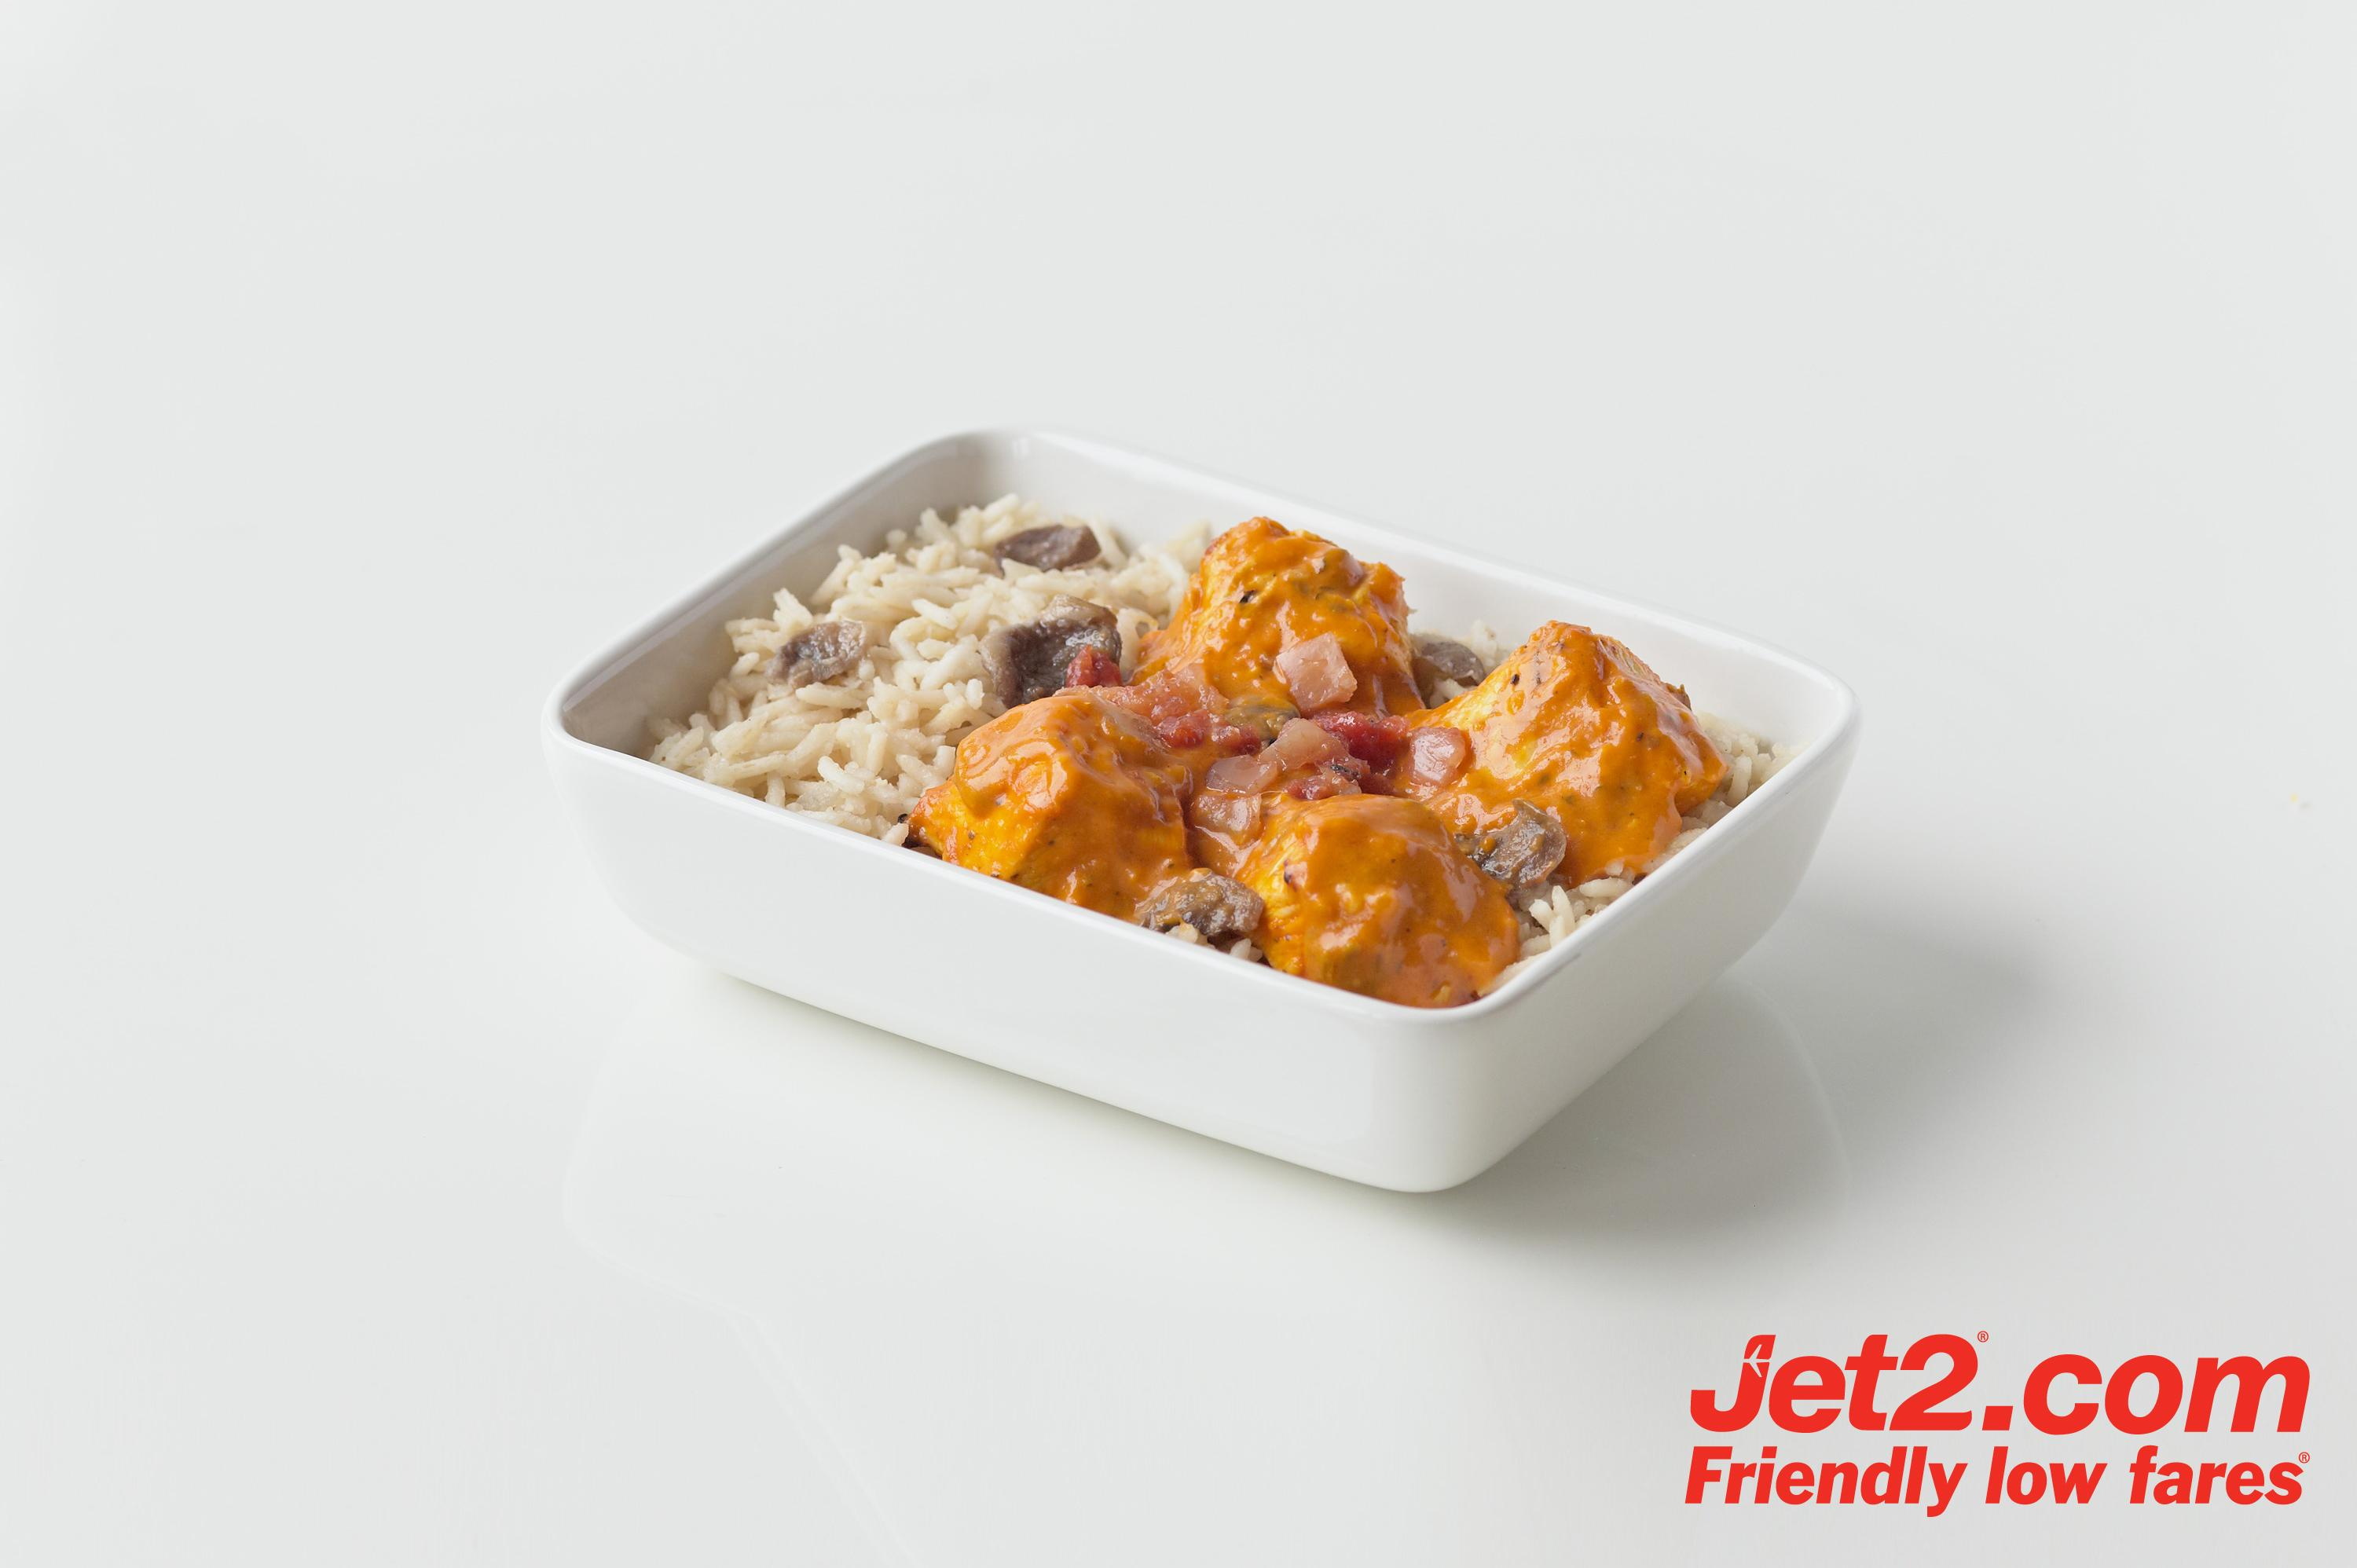 Jet2.com Launches New In-Flight Meal From Budapest